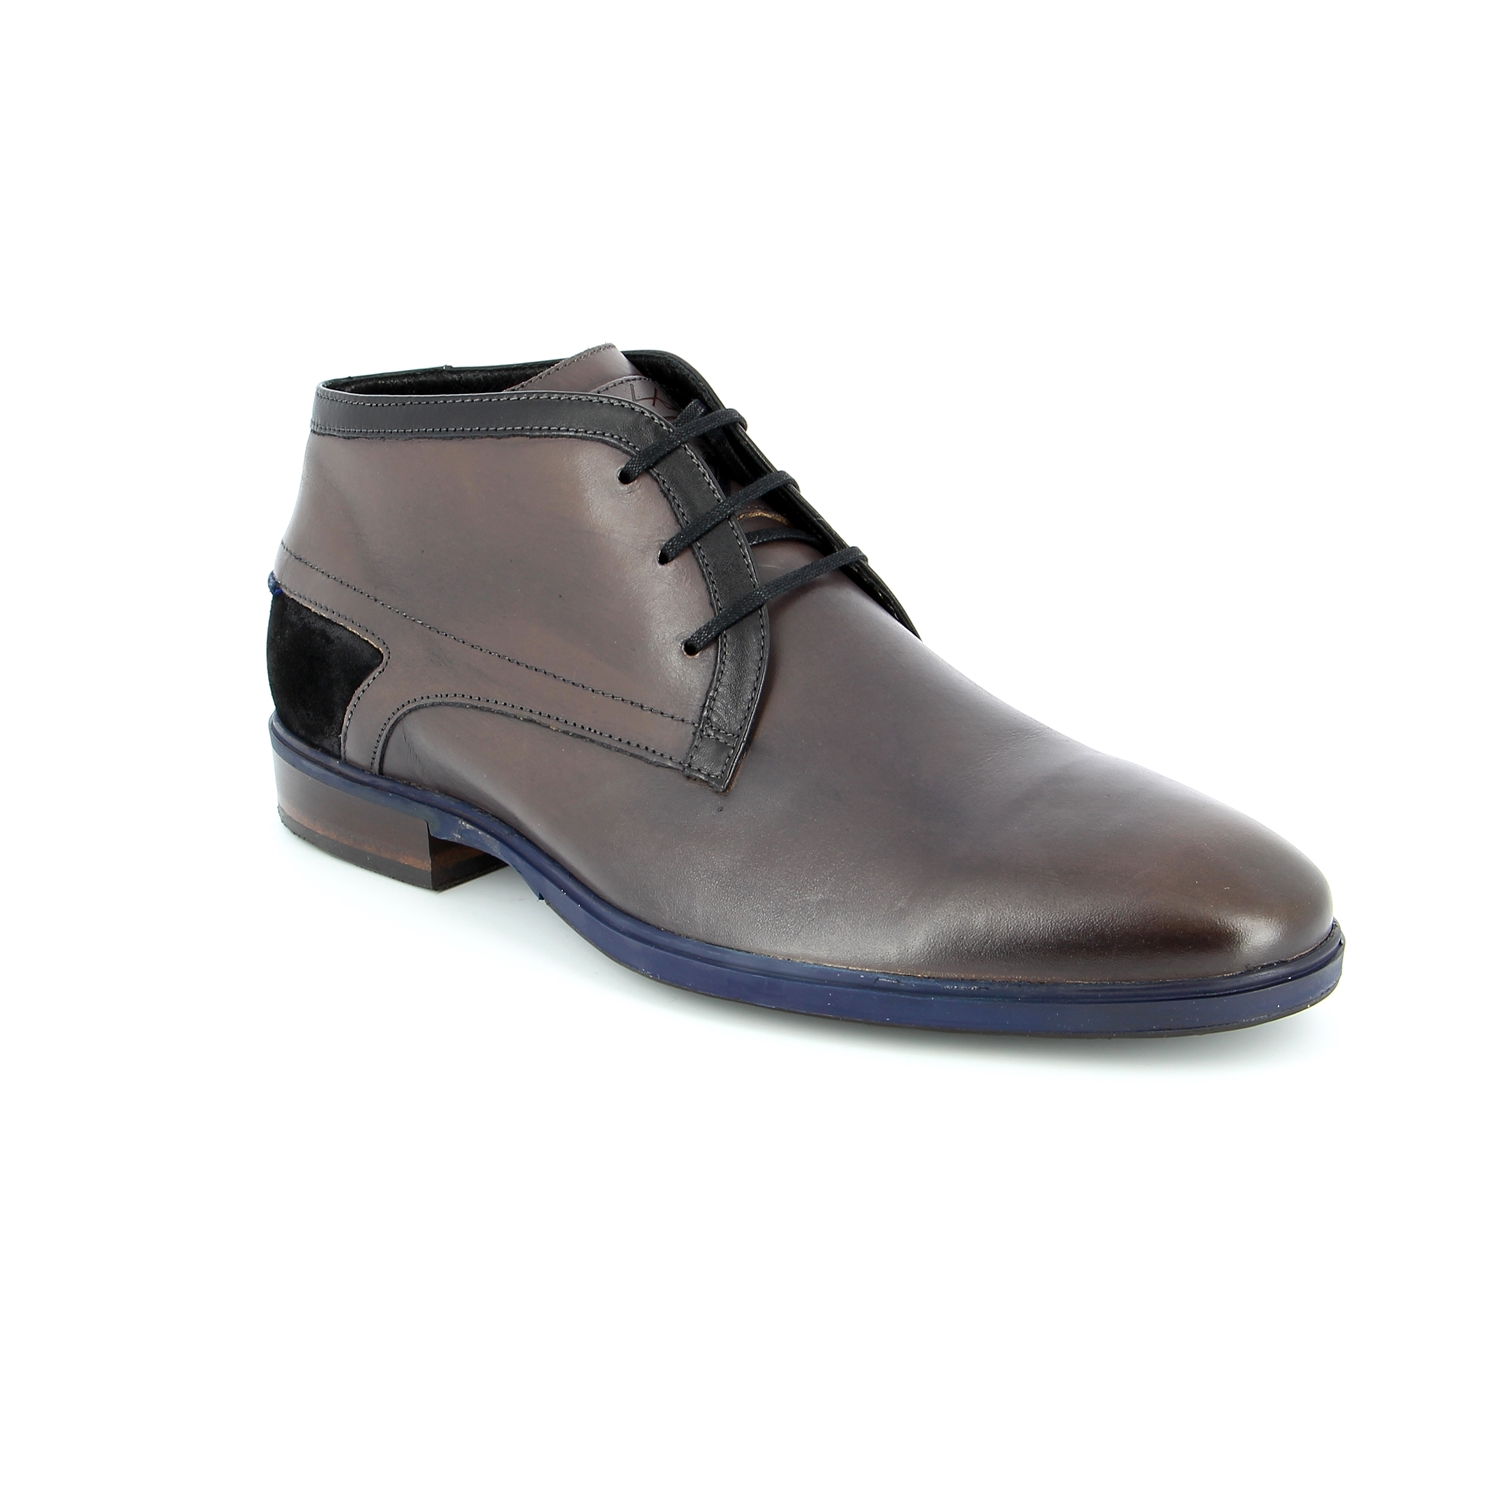 Floris Van Bommel Bottines gris